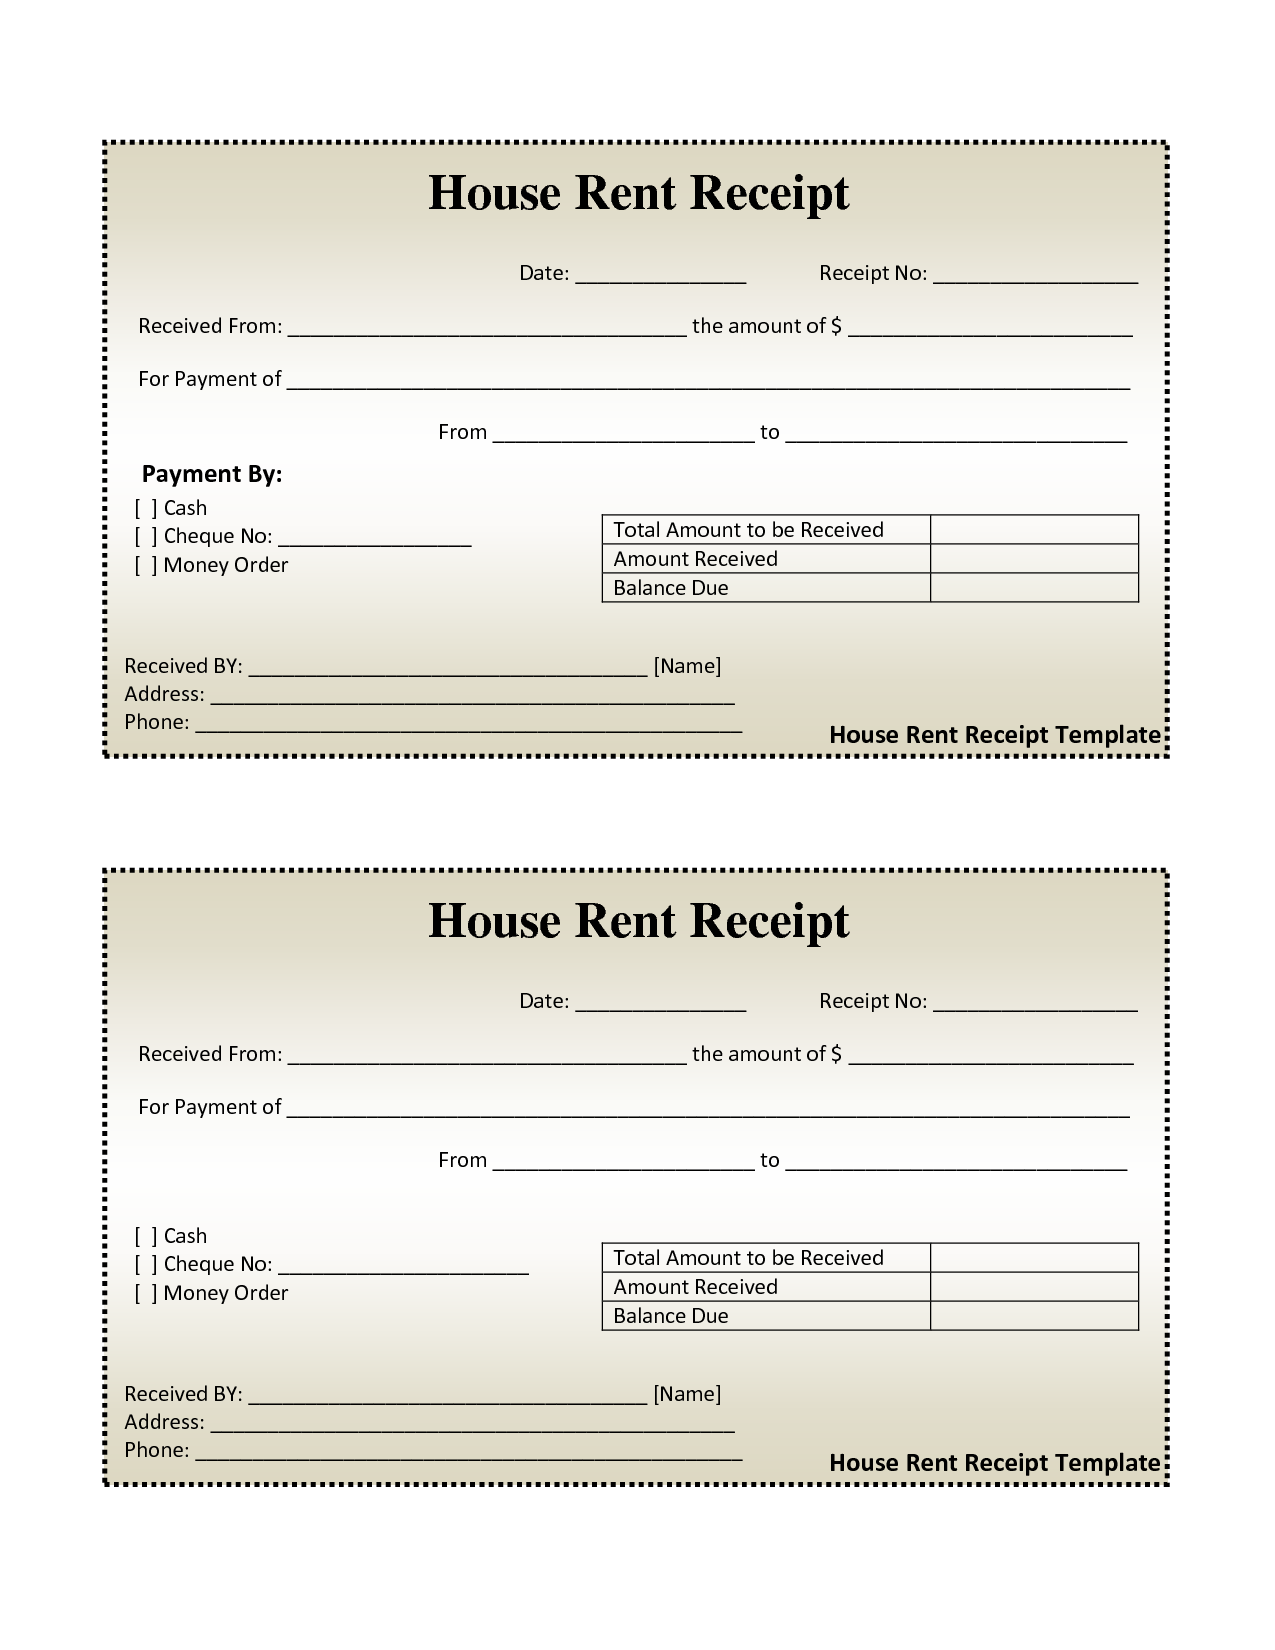 free house rental invoice – House Rental Receipt